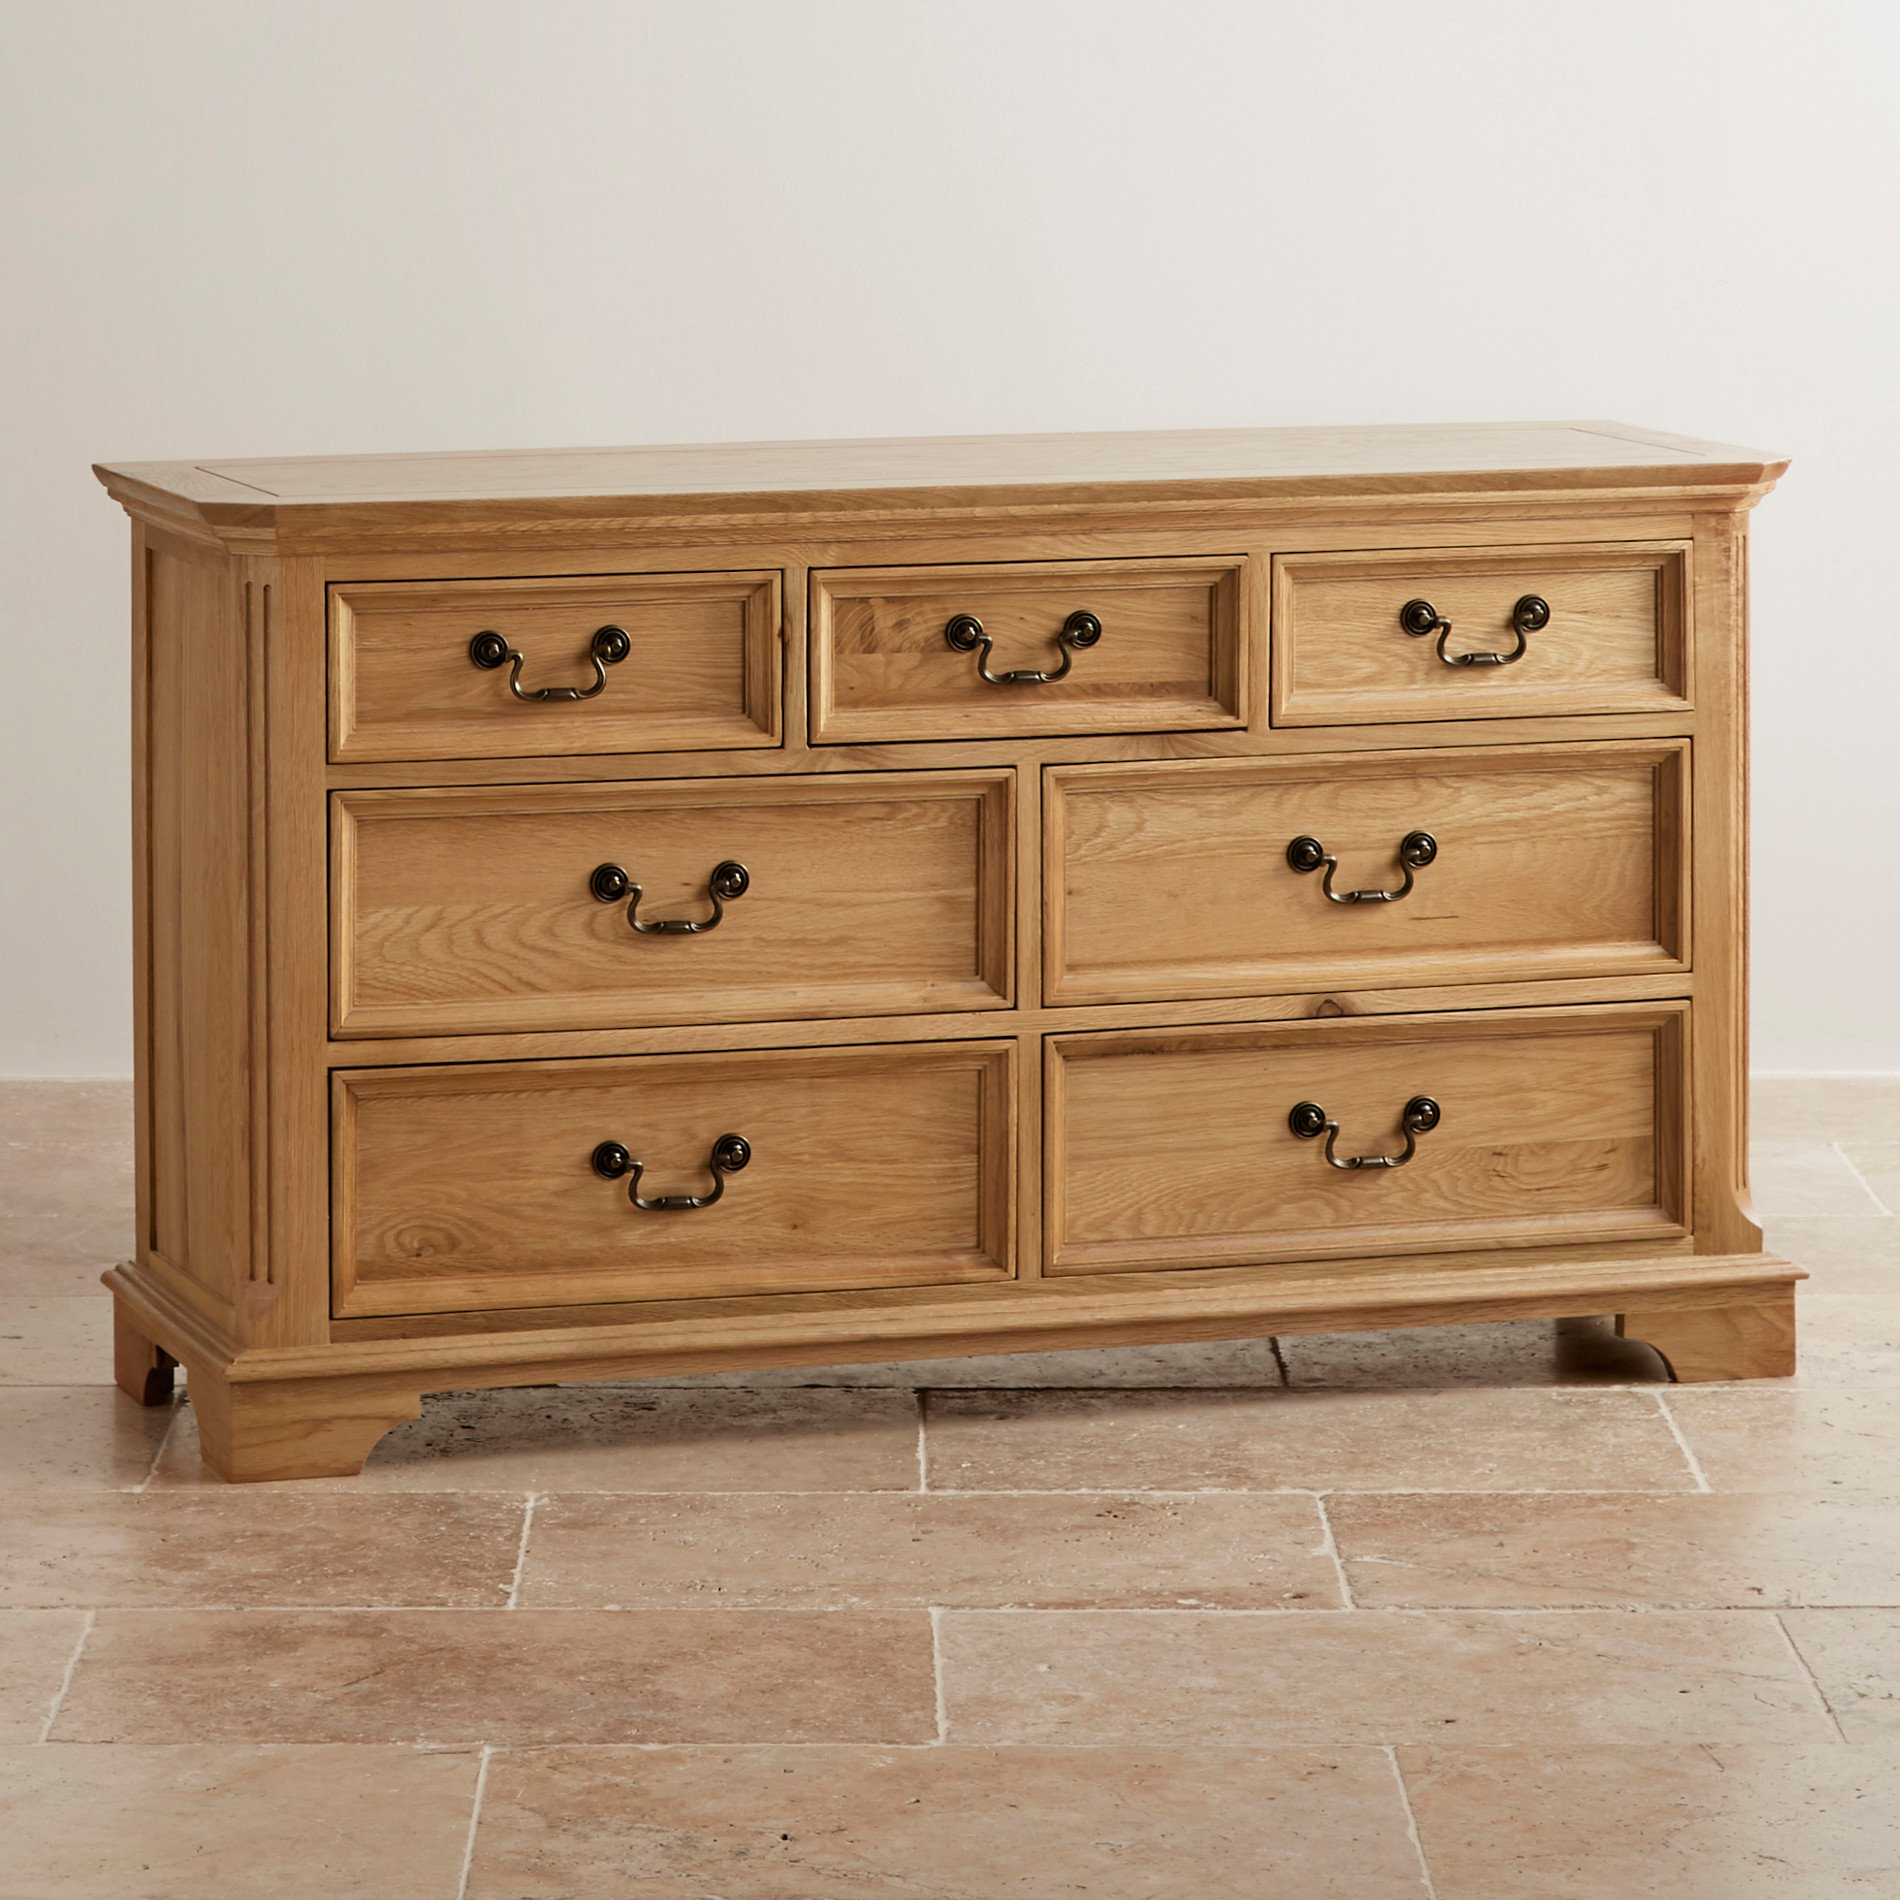 Edinburgh Natural Solid Oak 3 + 4 Chest Of Drawers. Cute Desk Chairs. Small Entry Way Table. Secretary Style Desks. Under Desk Elliptical. Uwl It Service Desk. Designer Desks For Sale. Best Desk Speakers. Corner Armoire Desk